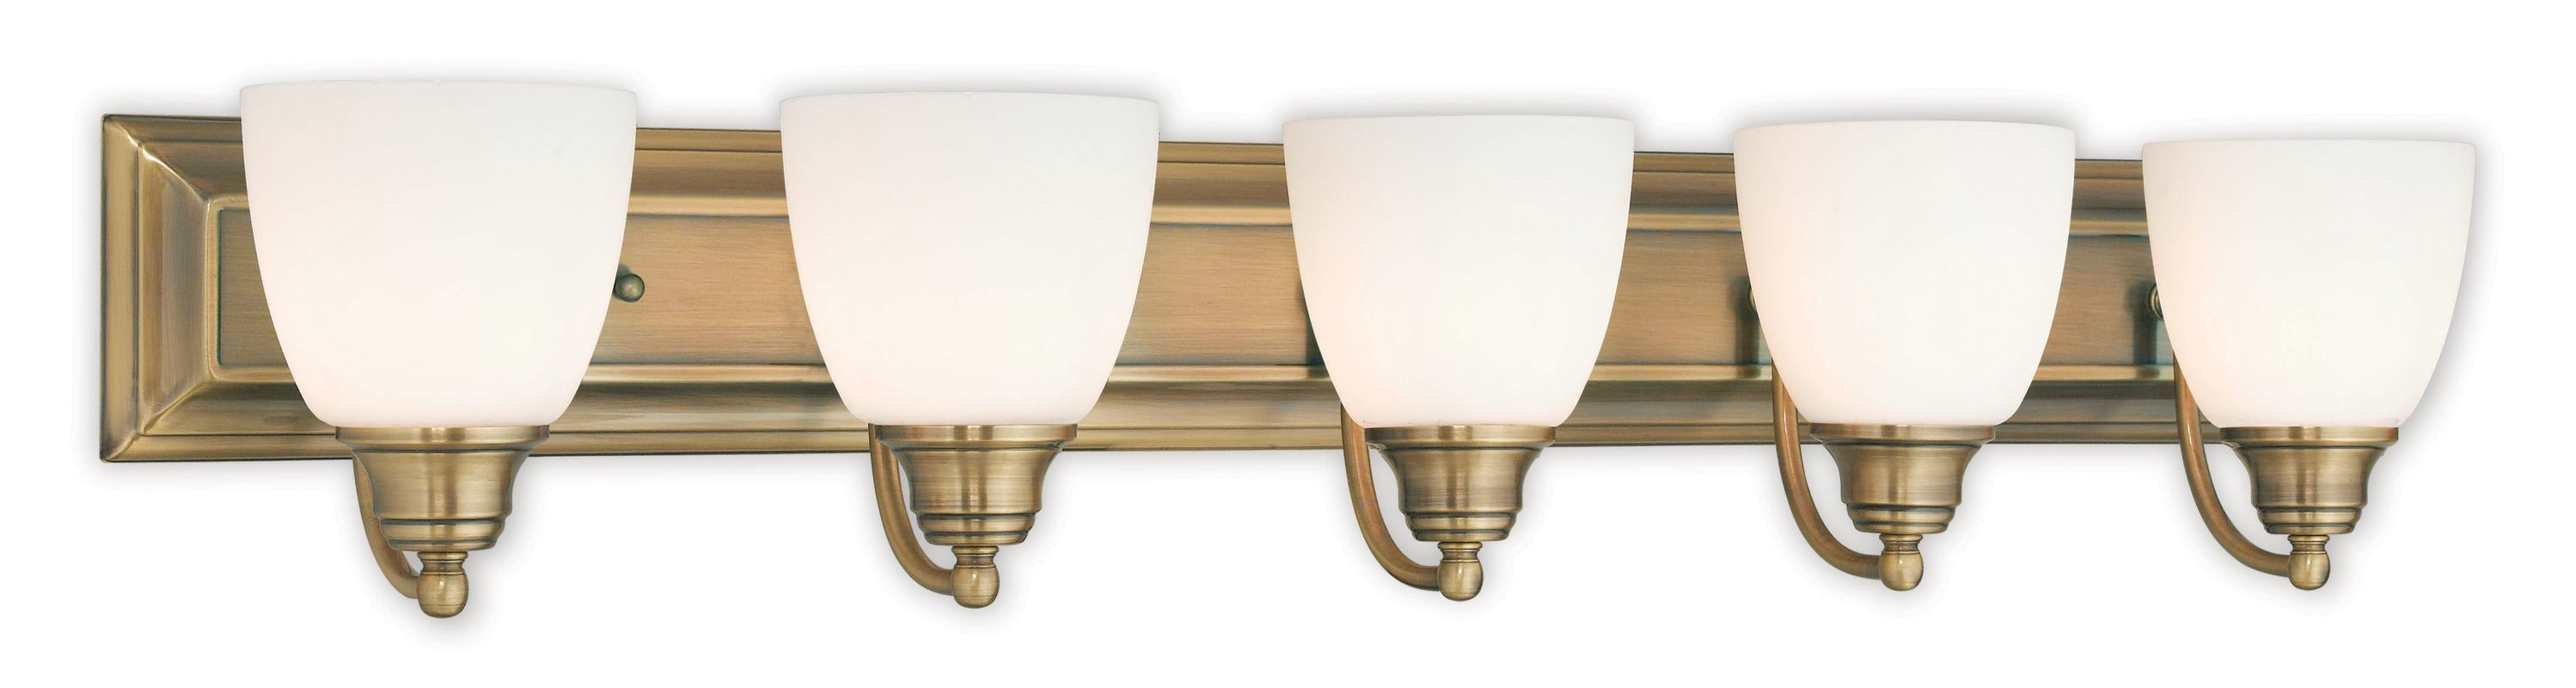 Blown Glass Vanity Light : Livex Lighting 10505-01 Antique Brass Springfield 5 Light Vanity Light with Hand-Blown Glass ...